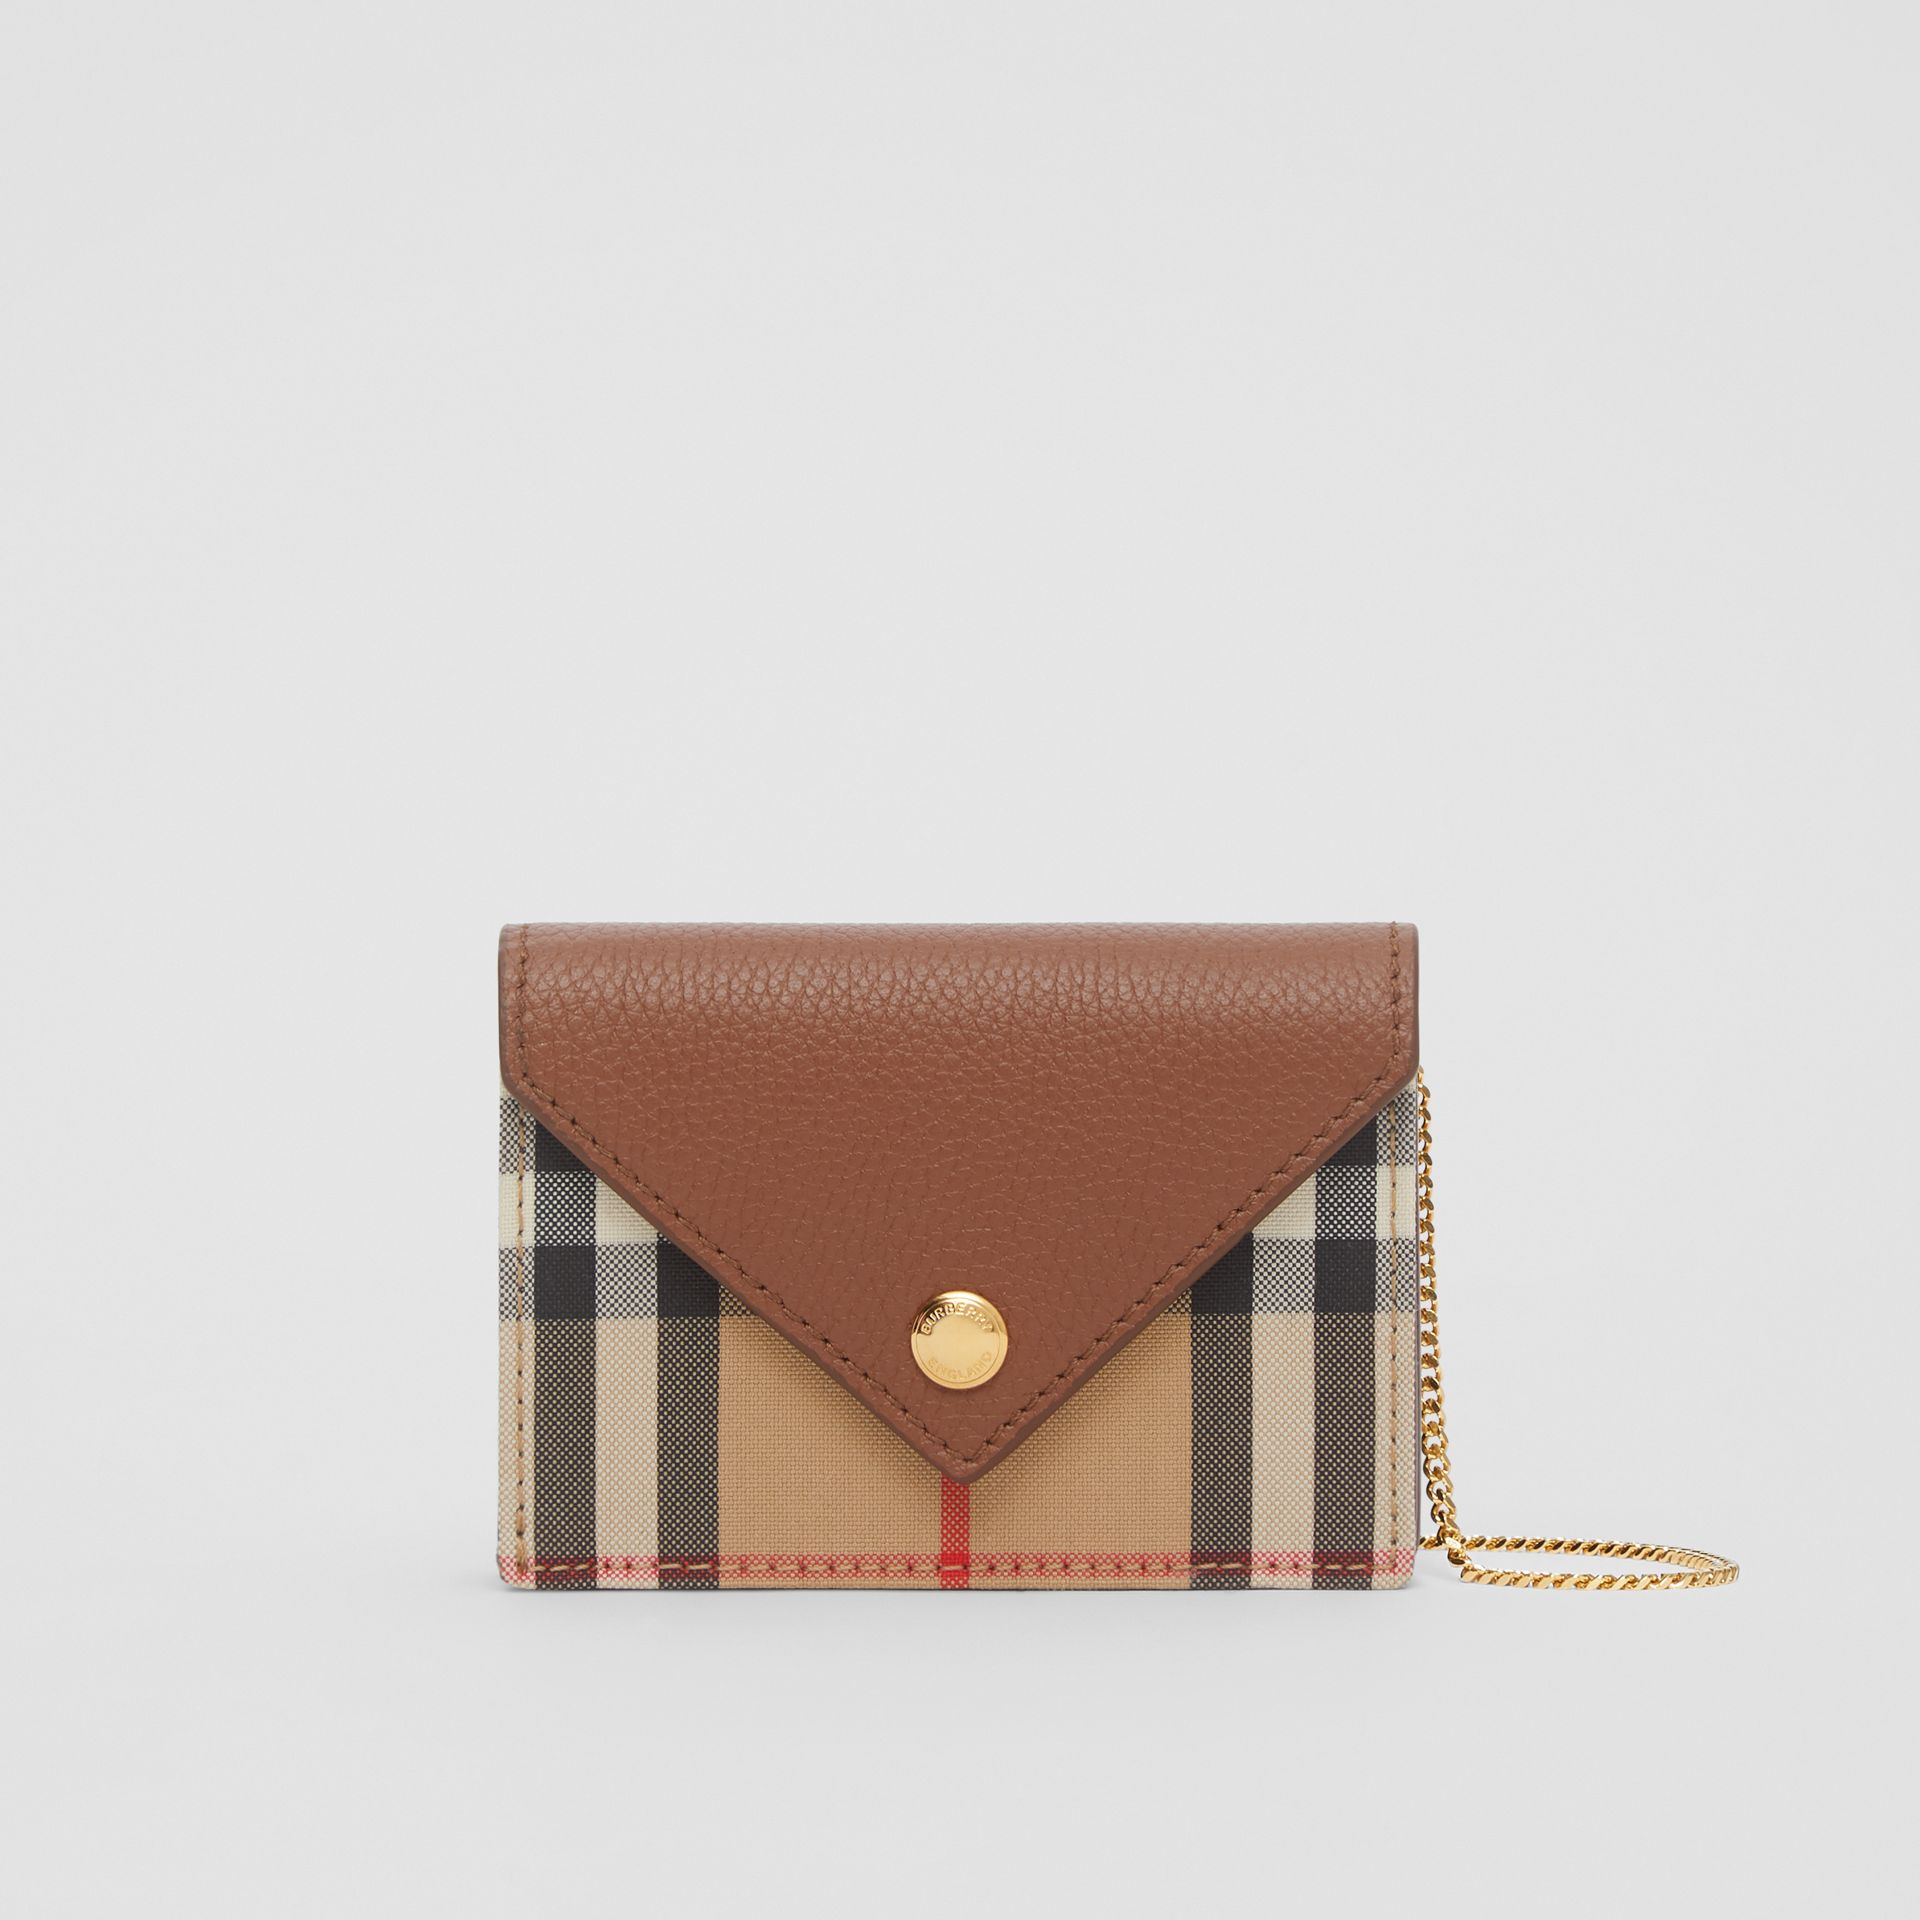 Vintage Check and Leather Card Case with Strap in Tan - Women | Burberry - gallery image 0